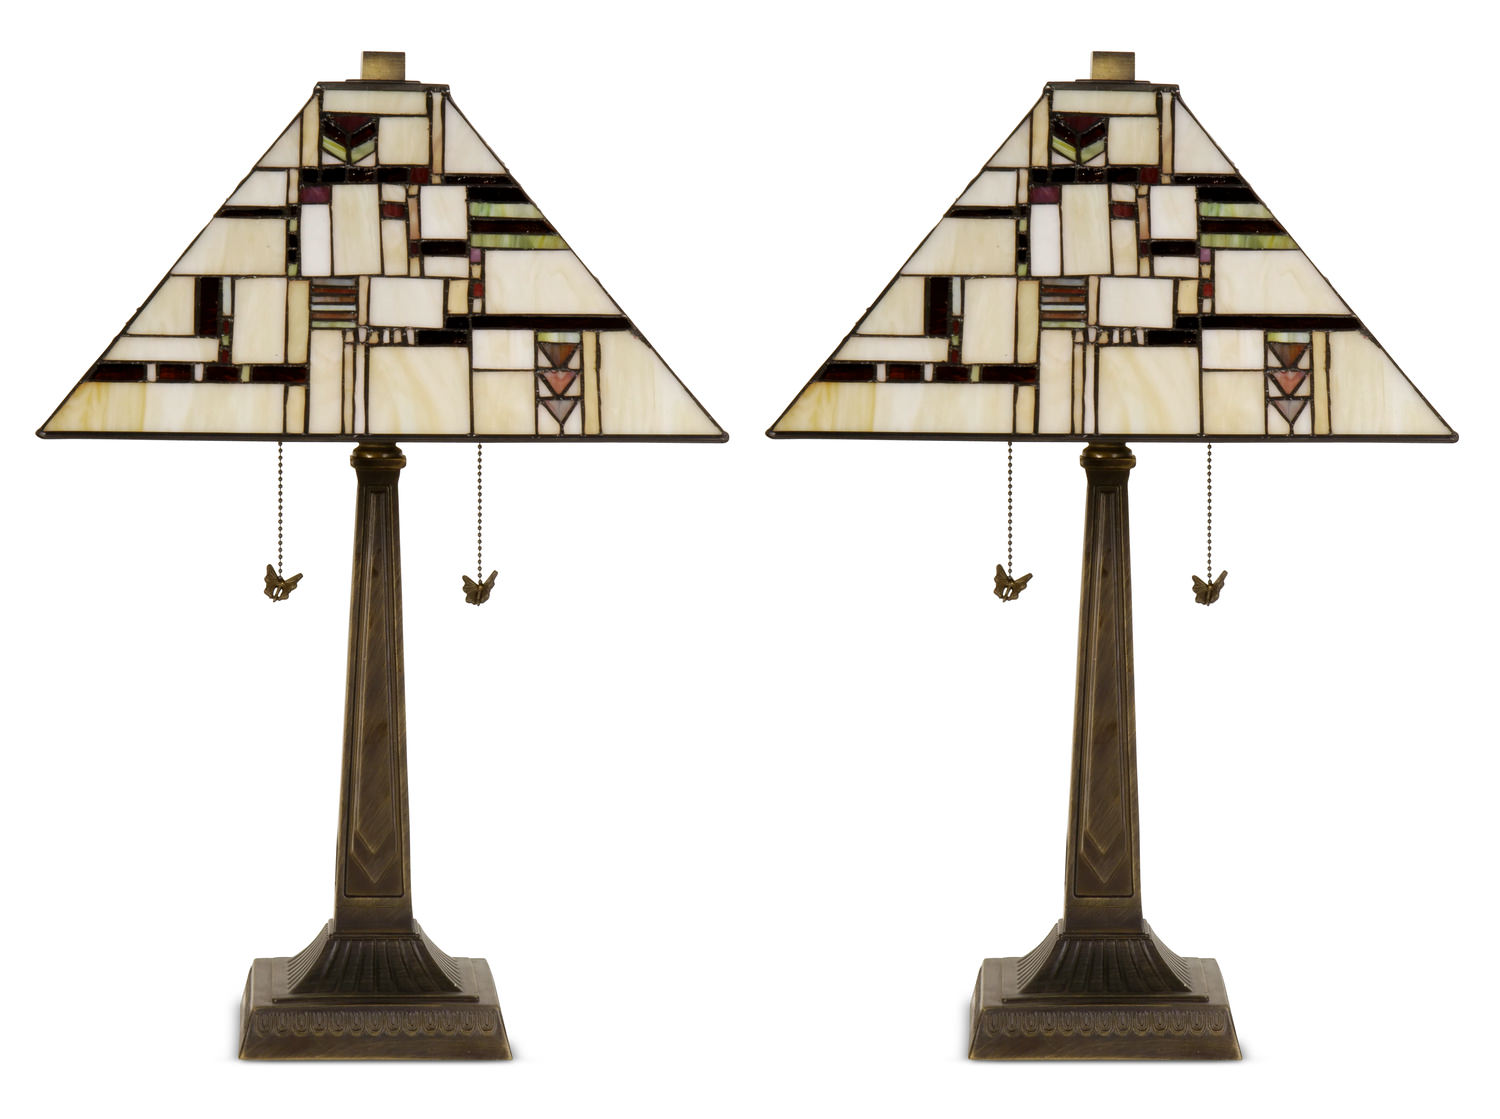 Milton Mission Table Lamp   Buy One, Get One Free!